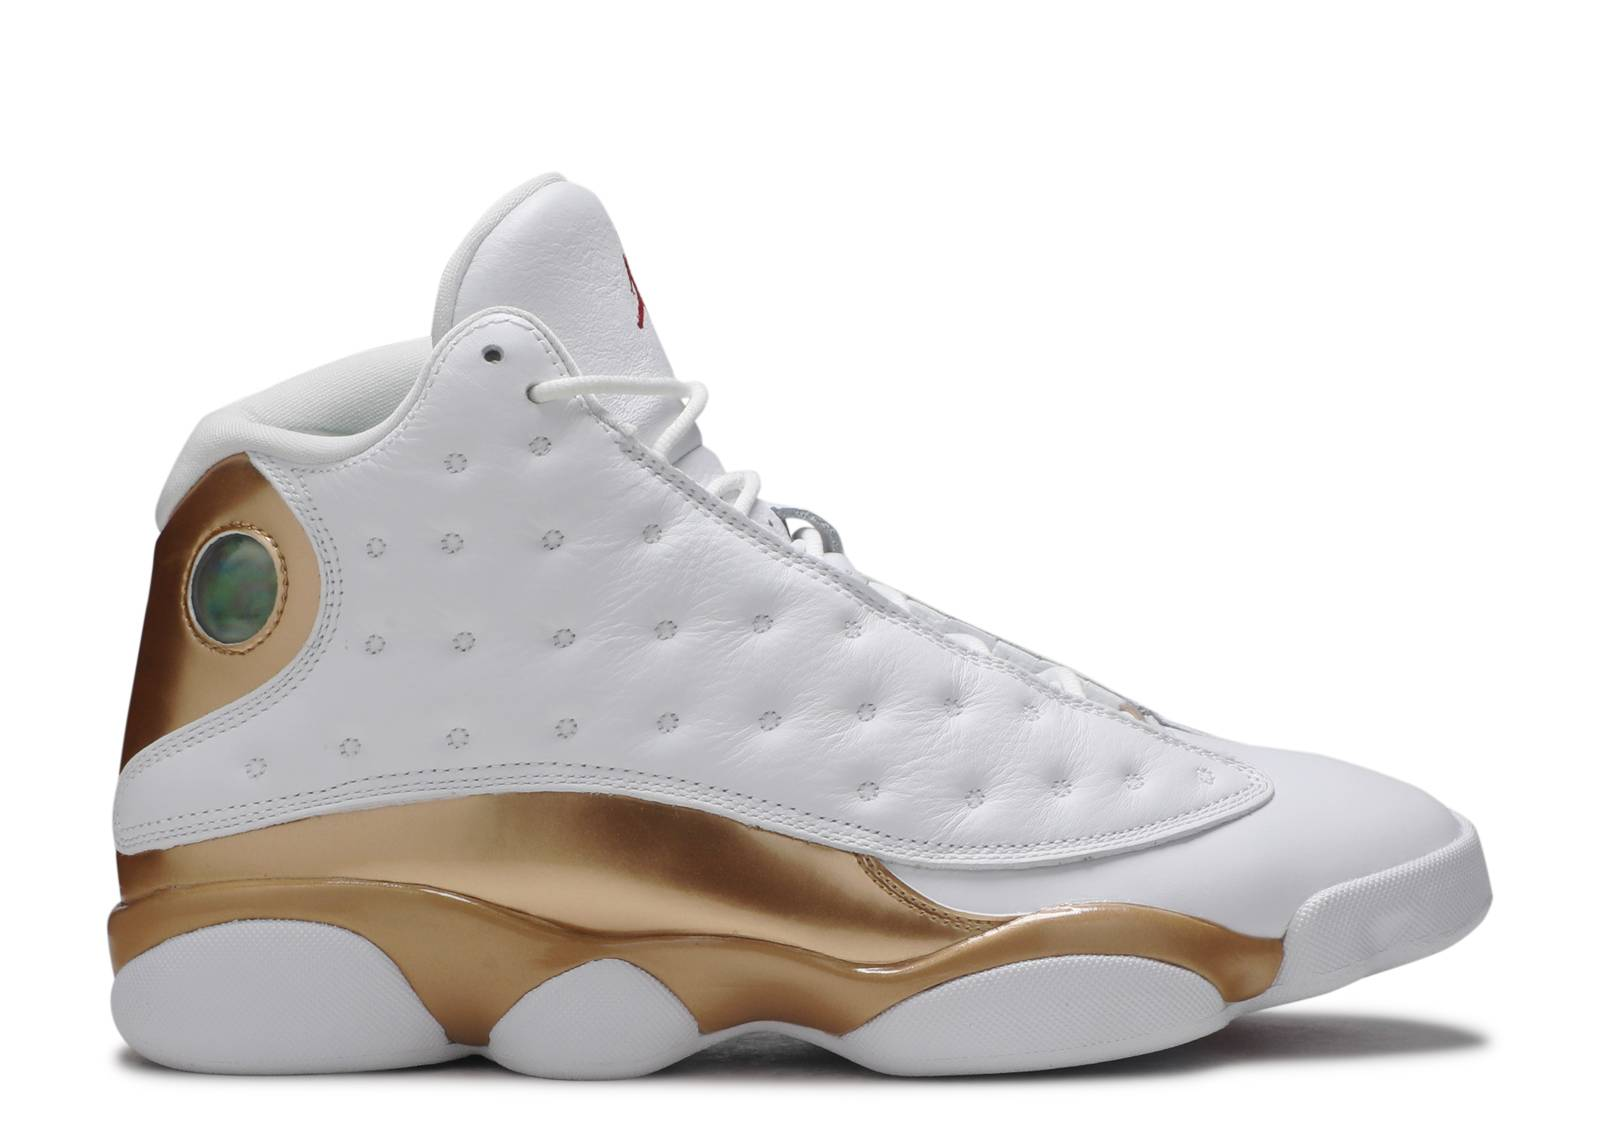 Blanc Et Or Air Jordan 13